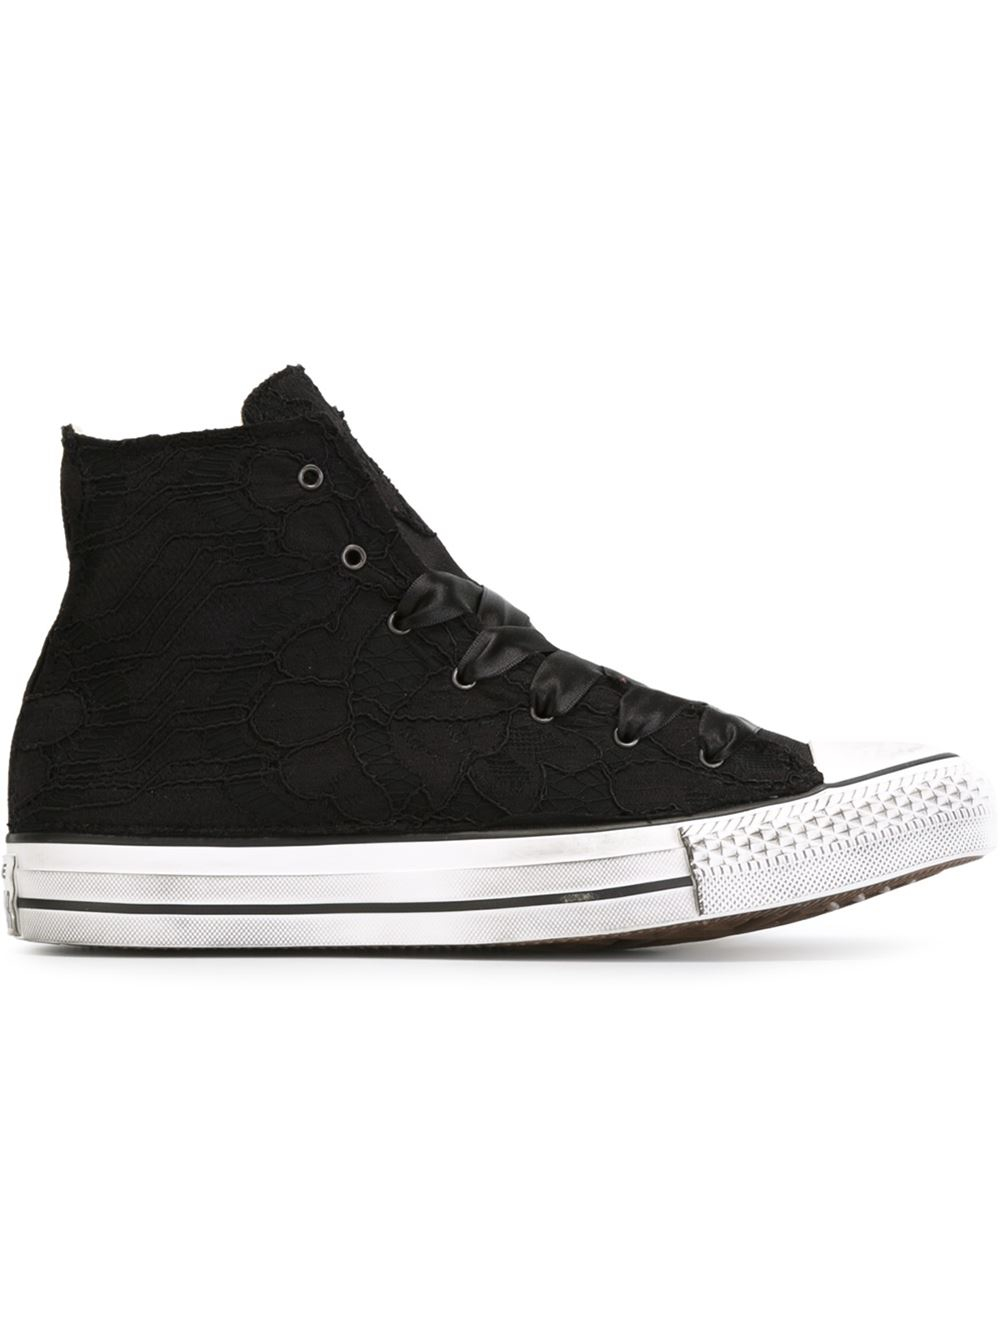 Lyst Converse Satin Lace High Top Sneakers In Black For Men